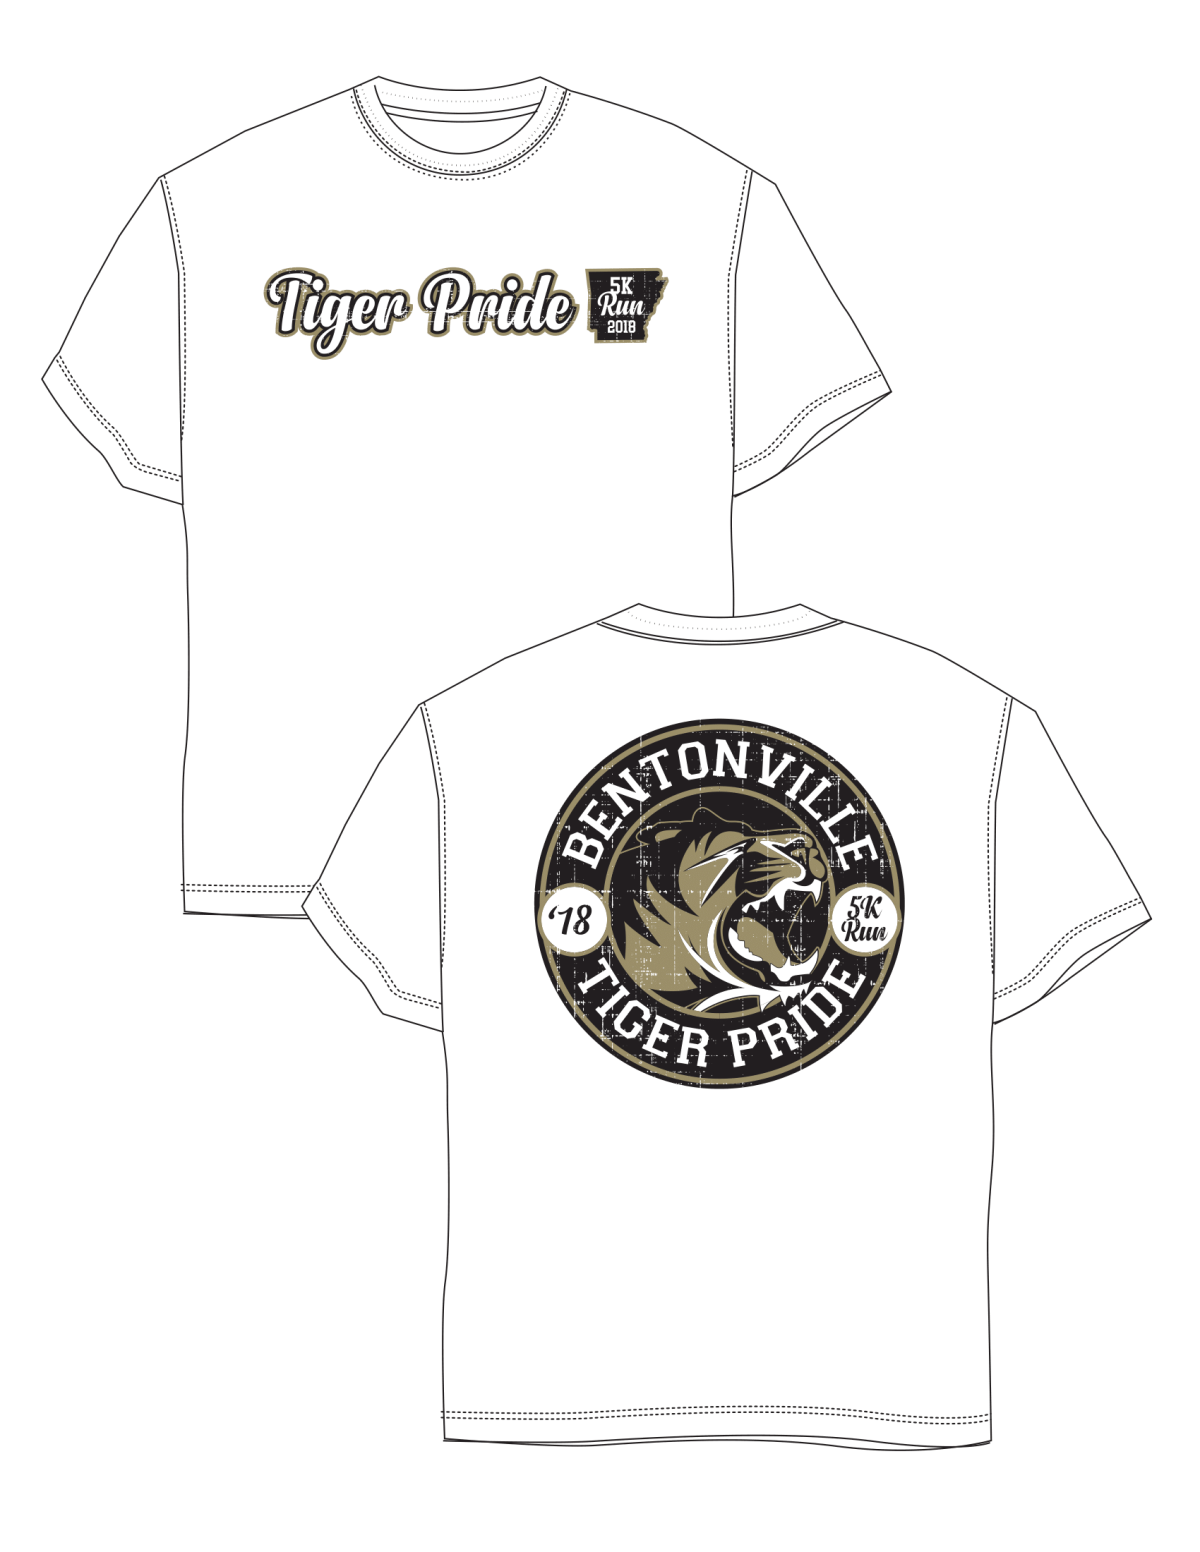 Bentonville High School- 2018 5K Run Shirts